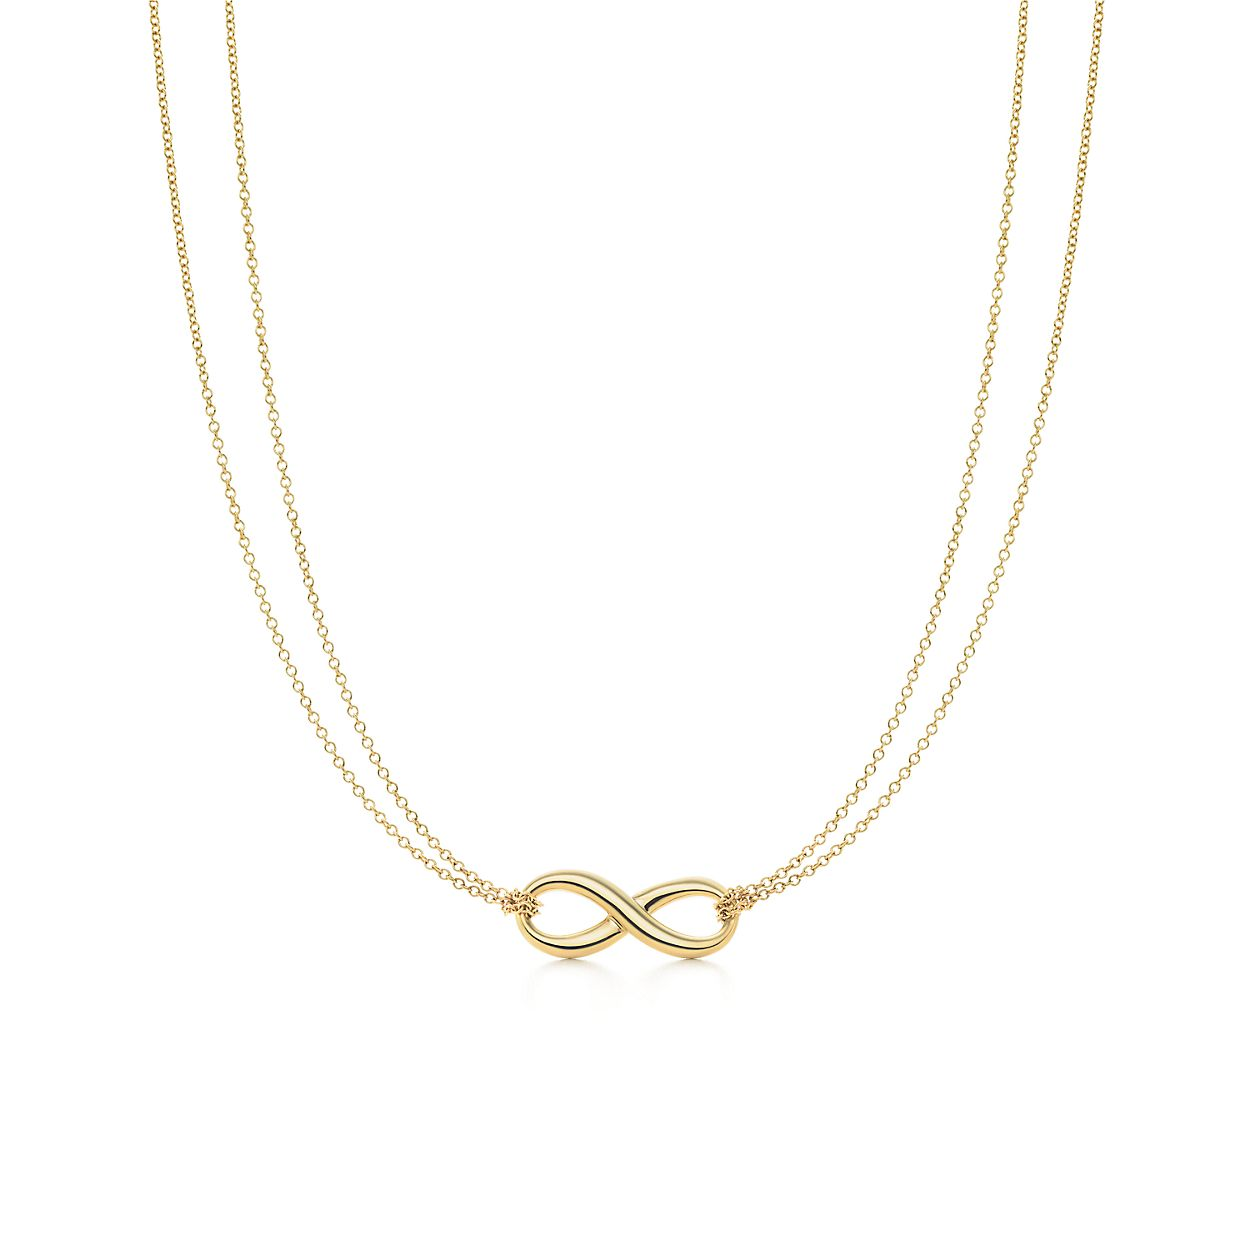 Tiffany infinity pendant in 18k gold tiffany co tiffany infinitypendant tiffany infinitypendant aloadofball Image collections